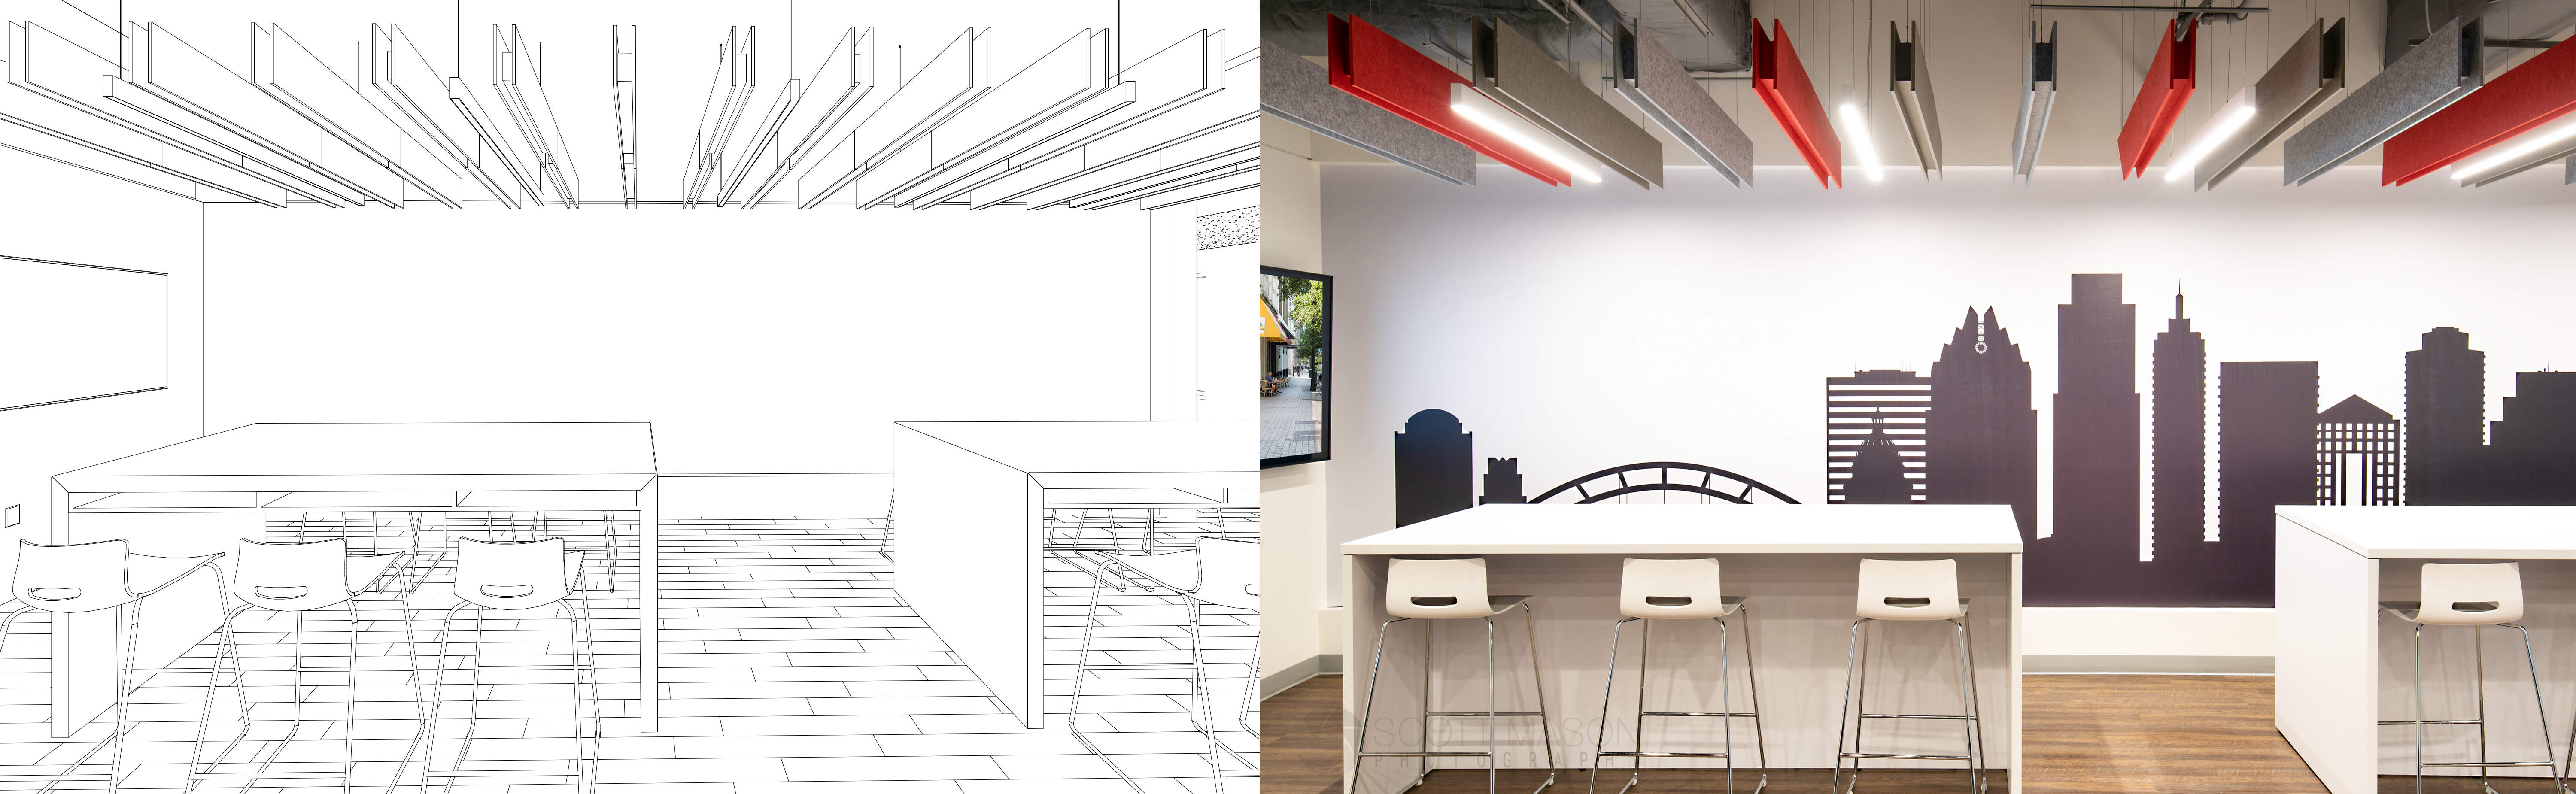 side-by-side of an architectural rendering and interior photo of a break room in an office